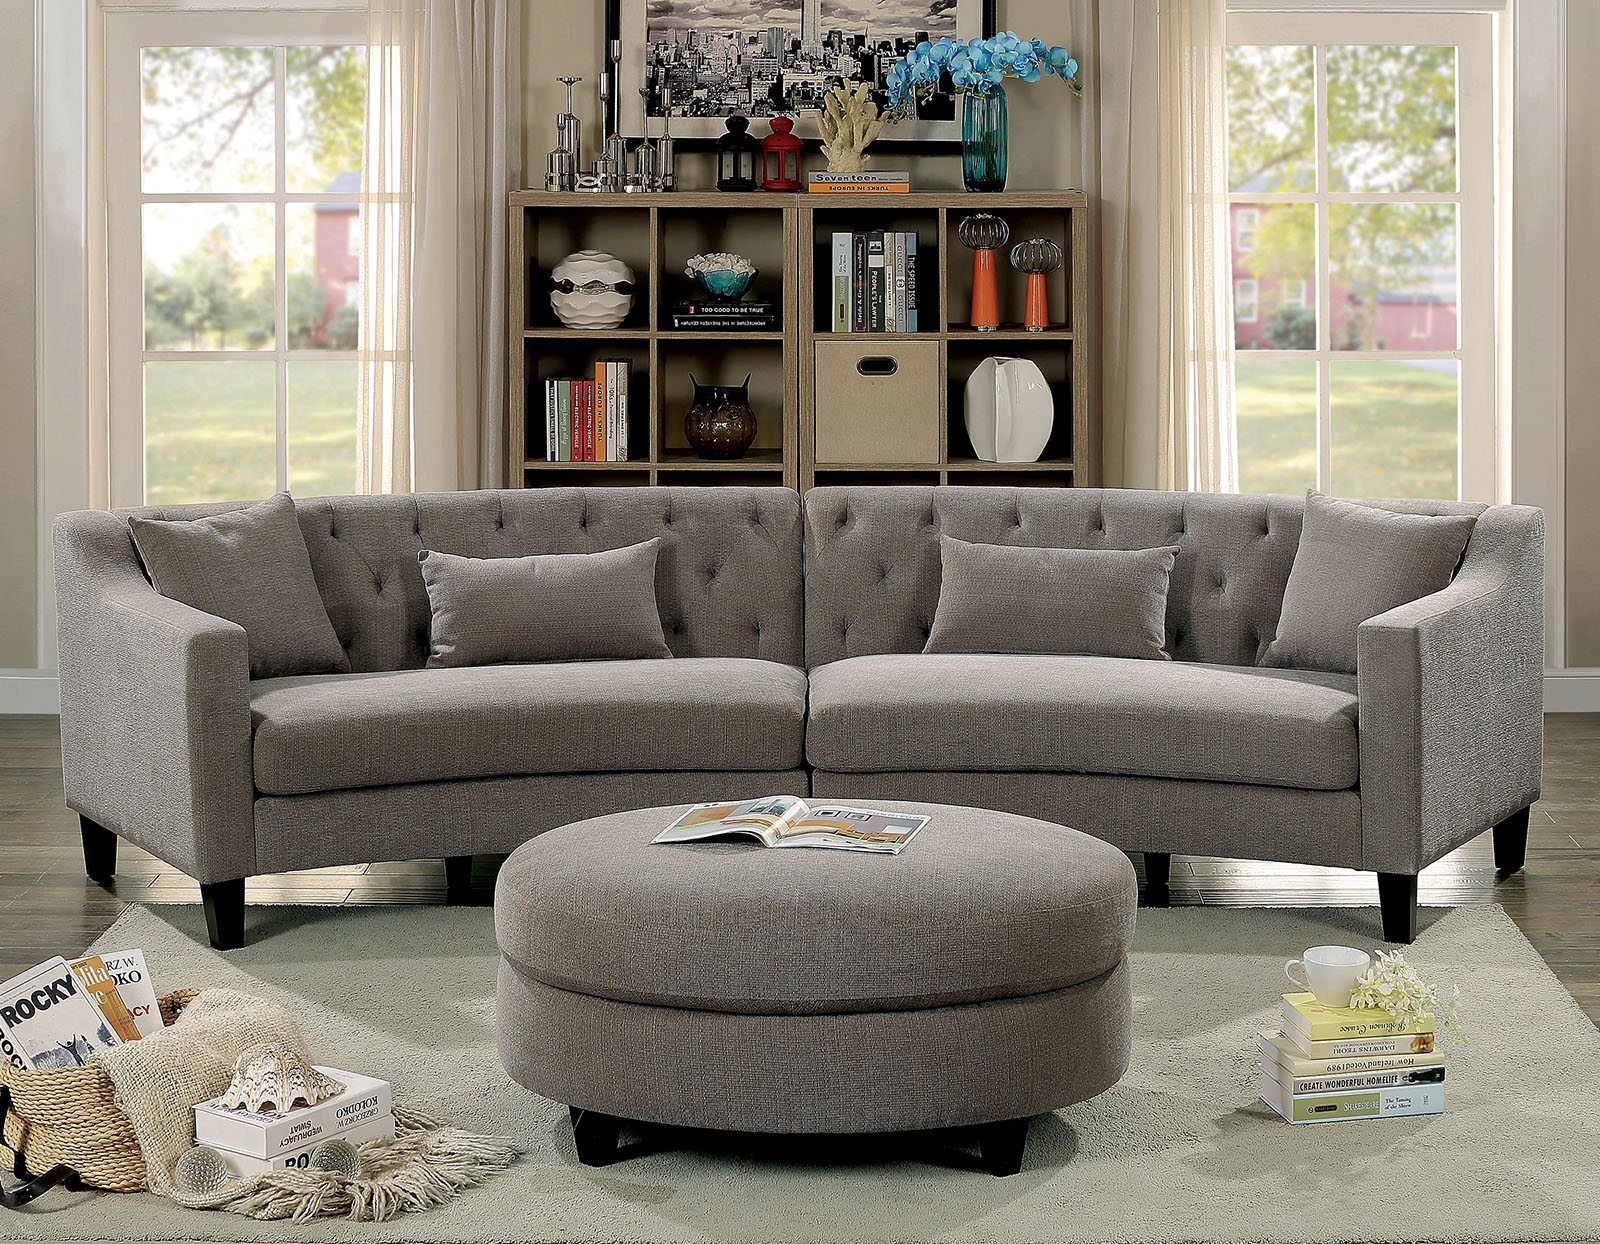 How to Decide Between a Sectional Sofa and a Couch OCFurniture